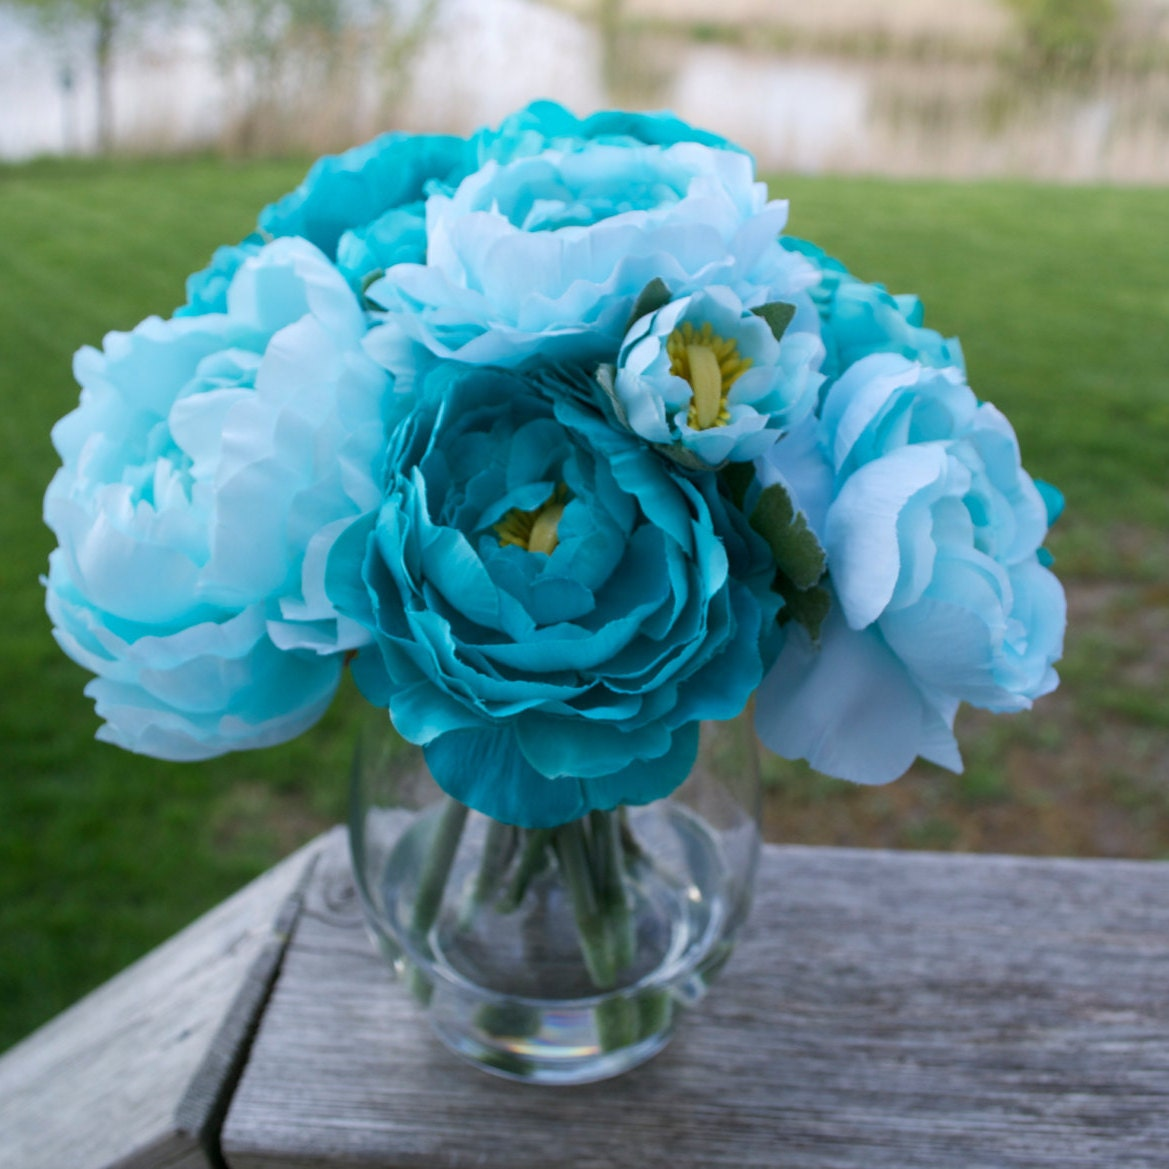 Faux Floral Arrangements For The Home By Chicagosilkflorist